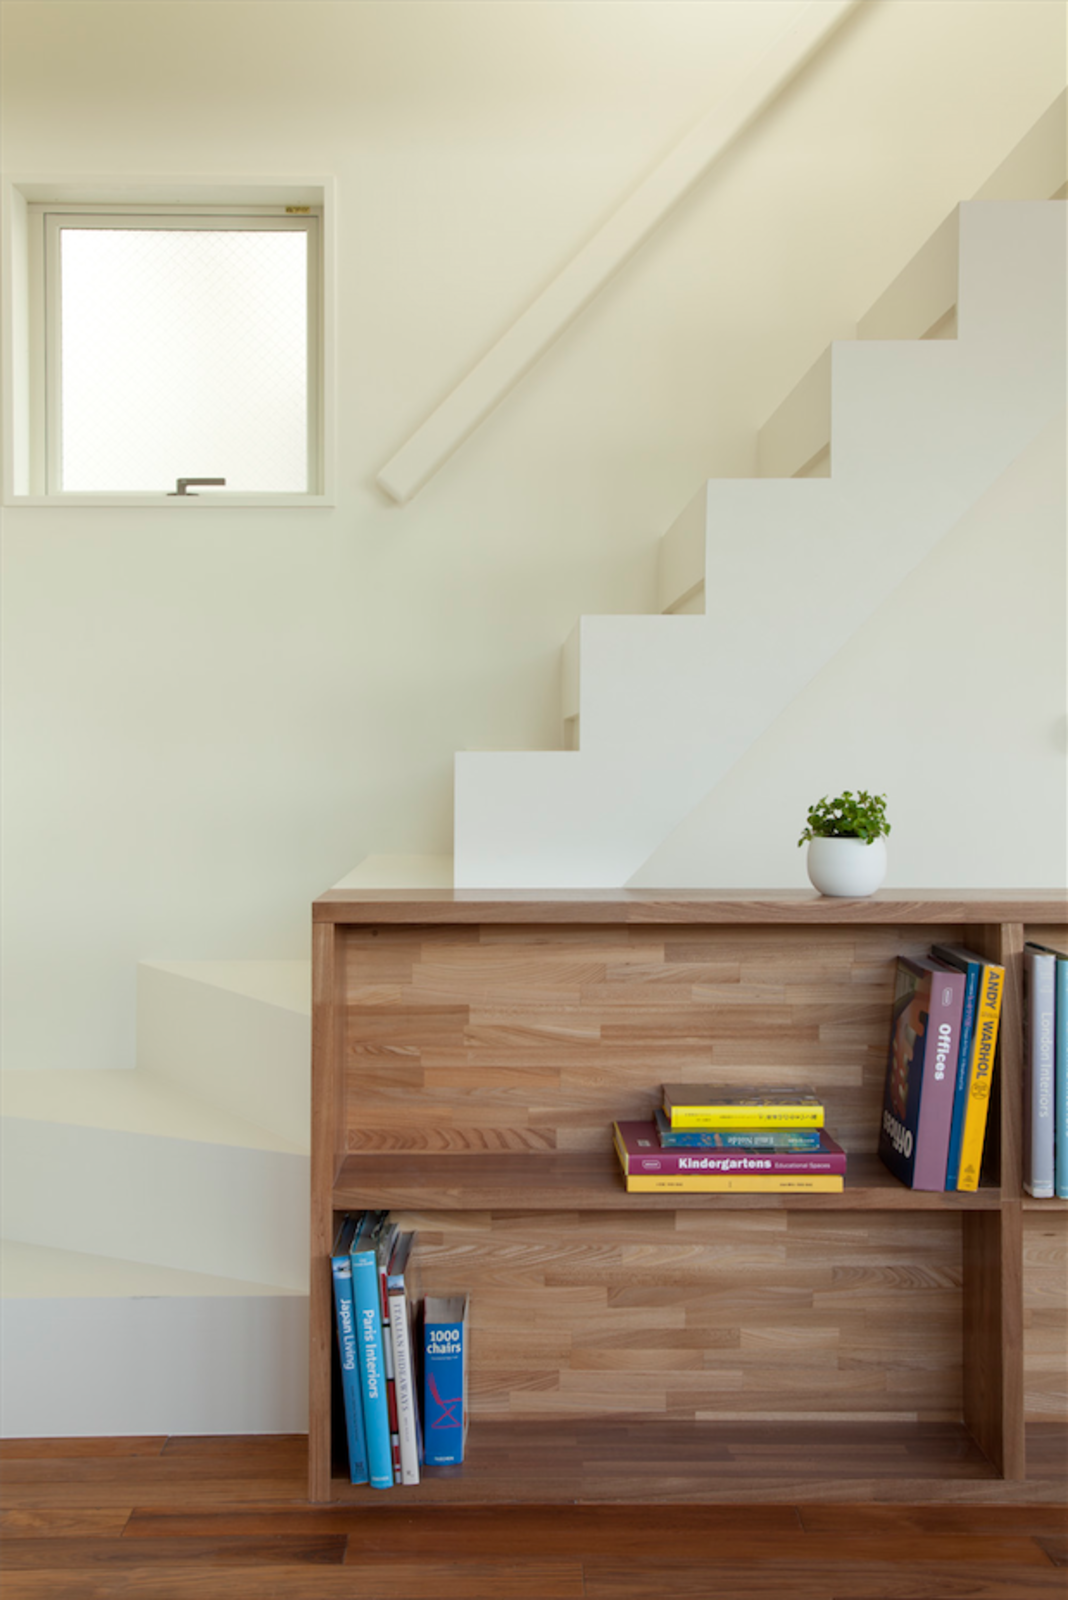 The staircase was painted white to promote uniformity of design.  Half & Half House by Laura C. Mallonee